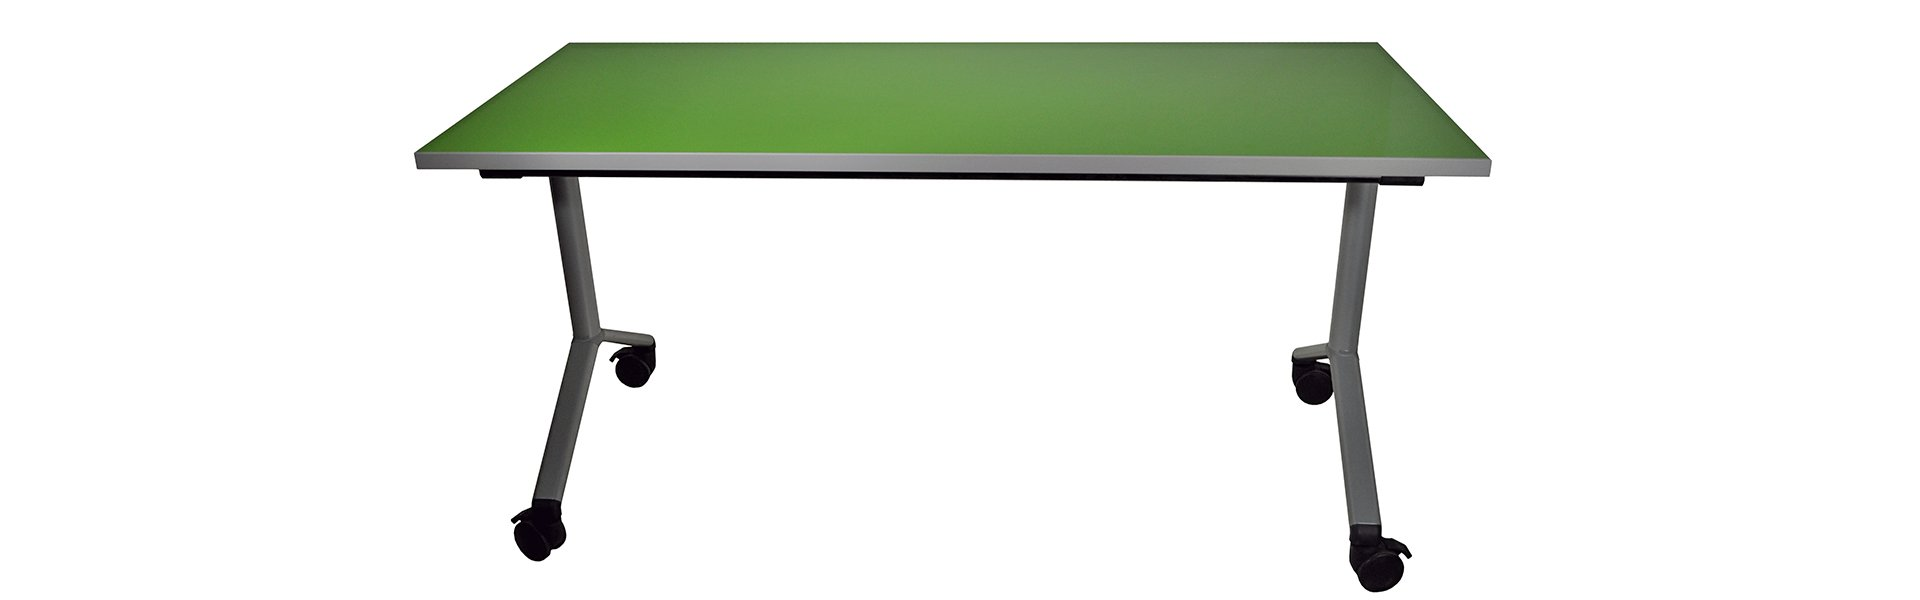 Corilam 617 Convertible Table Markerboard Top